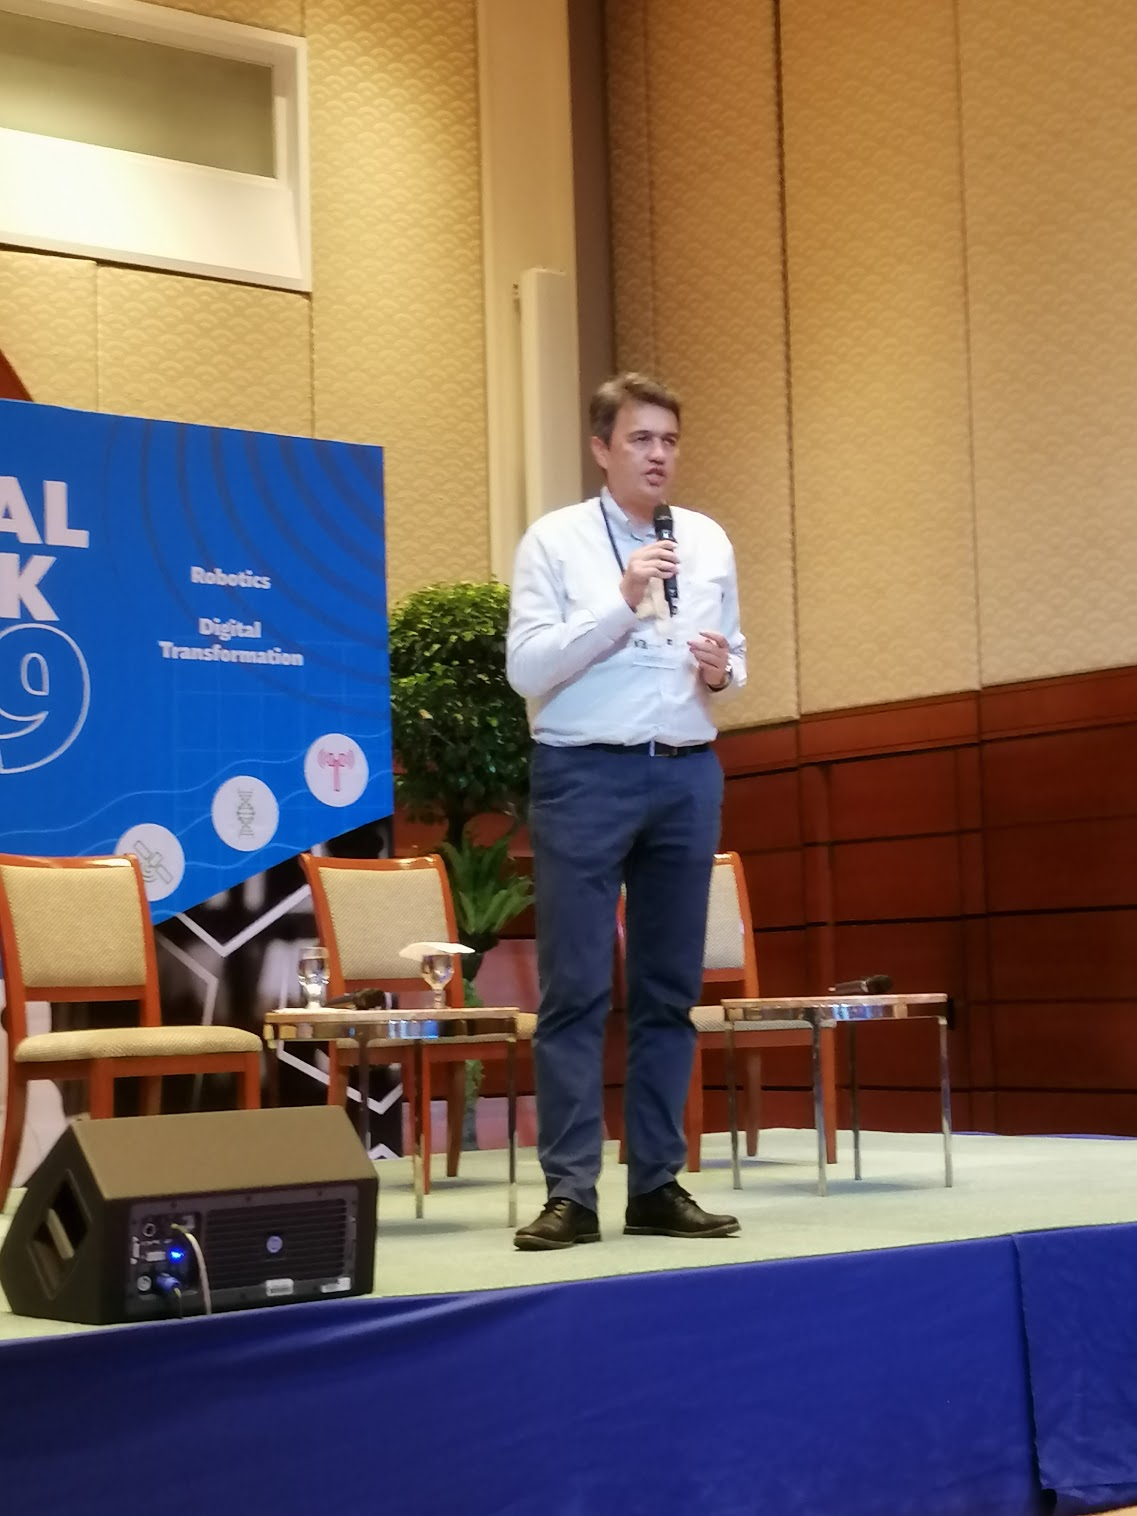 """3:17 p.m. - """"We're going back to the fundamental question of why we need to learn.""""The Future of Knowledge Management and Learning has started. Antoine Ting, Director, KPMG Business School at KPMG Singapore, gives the opening remarks."""